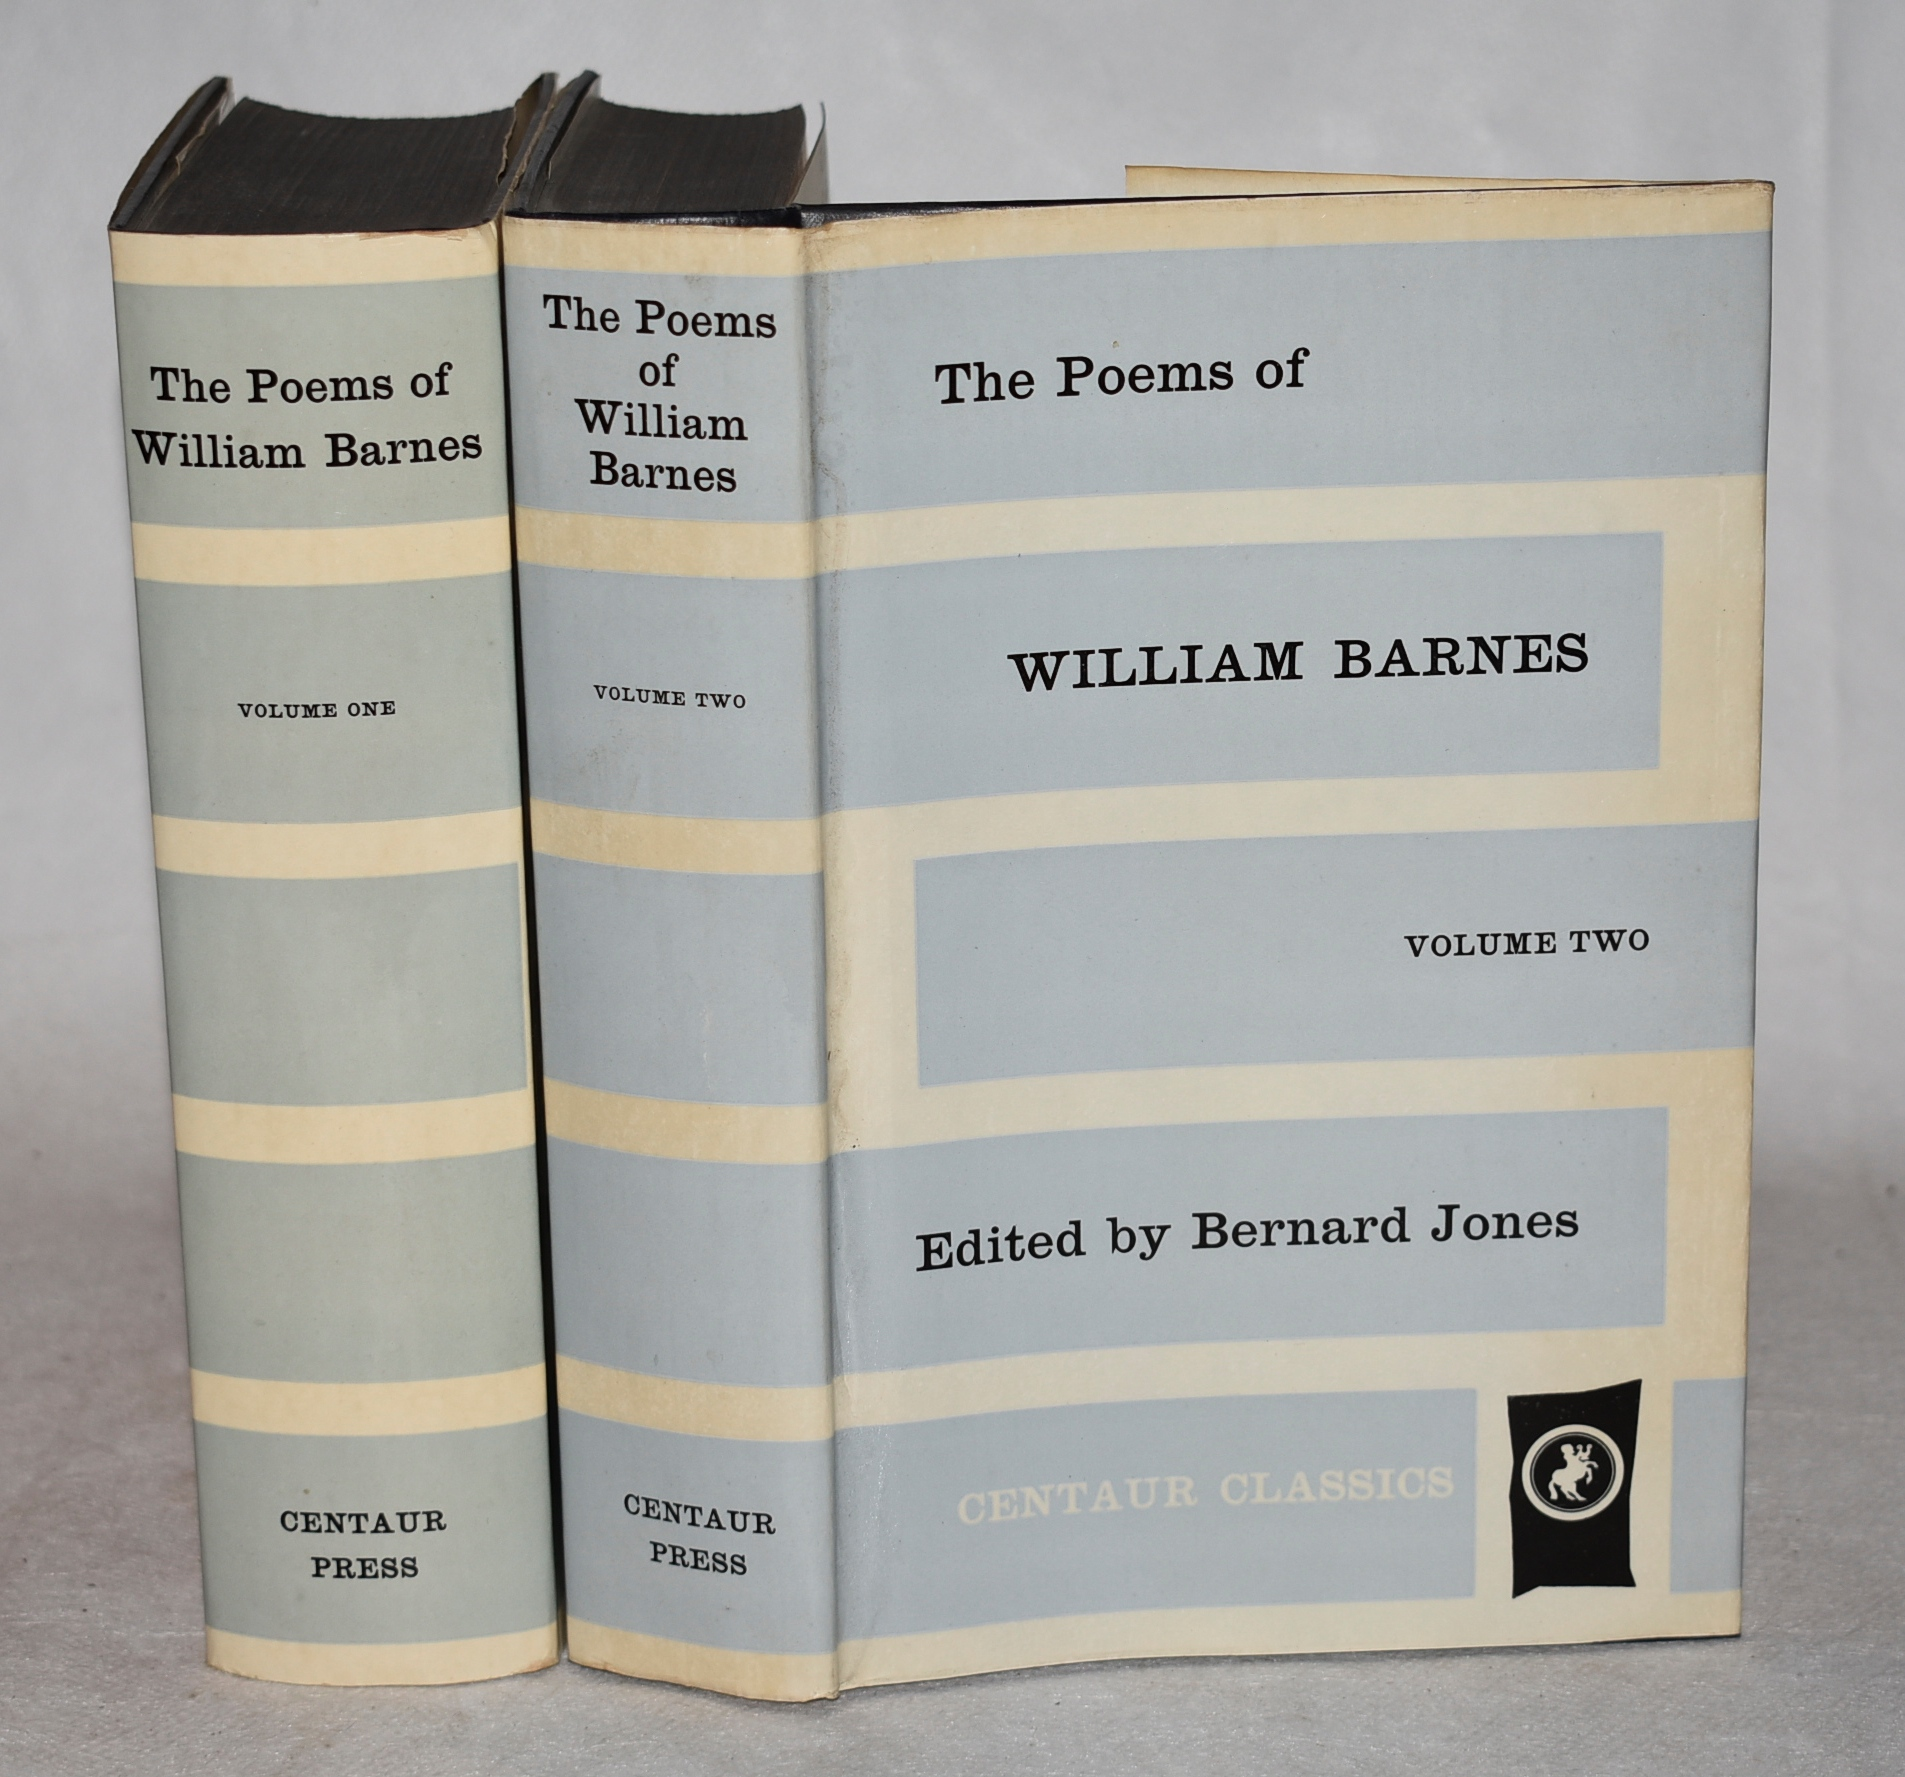 Image for The Poems of William Barnes. Edited by Bernard Jones. Centaur Classics. General Editor: J.M. Cohen. Two volumes.